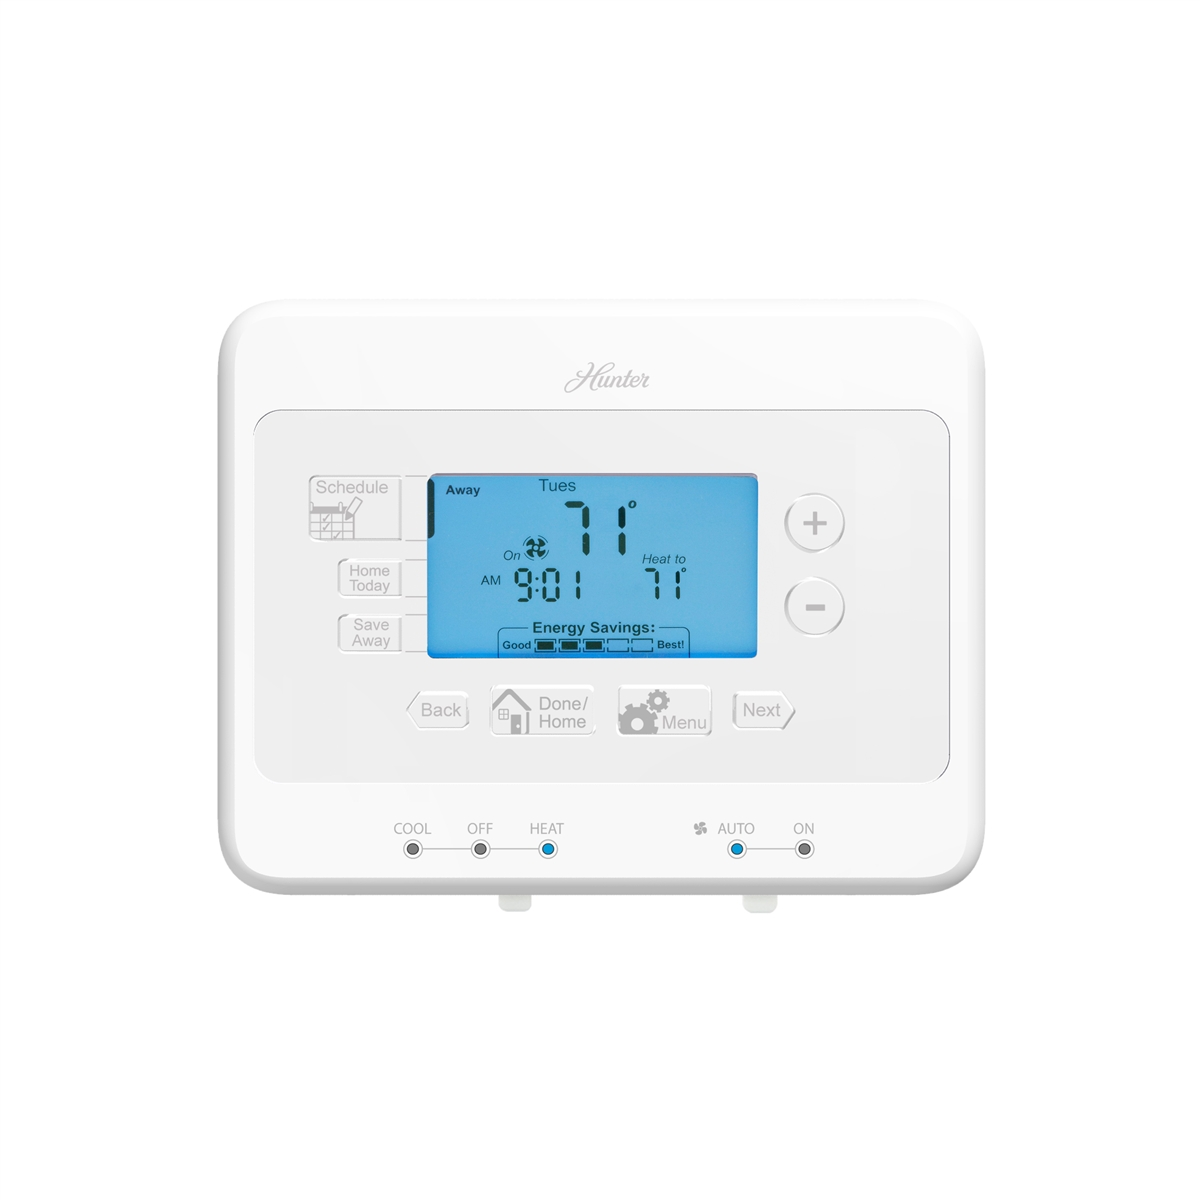 44378 2 1410336795 universal 7 day programmable thermostat 44378 hunter 44378 wiring diagram [ 1200 x 1200 Pixel ]